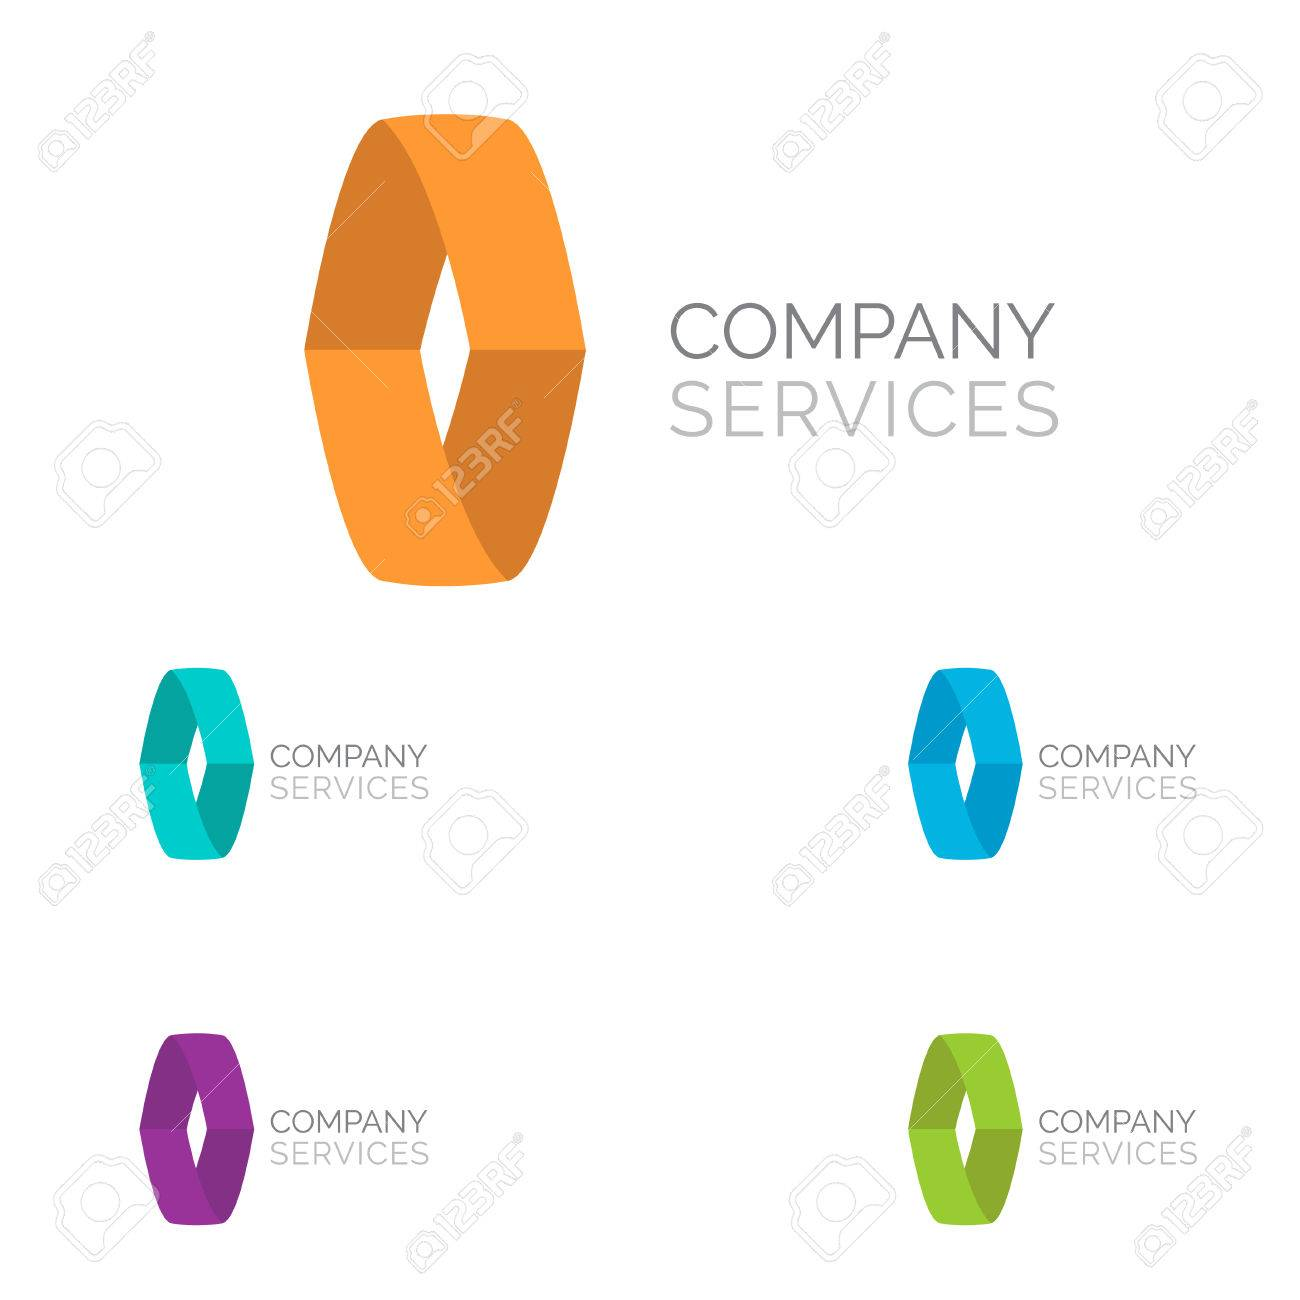 Letter O logo design template elements in different bright colors Stock  Vector - 36852060 f5e1287eaaef